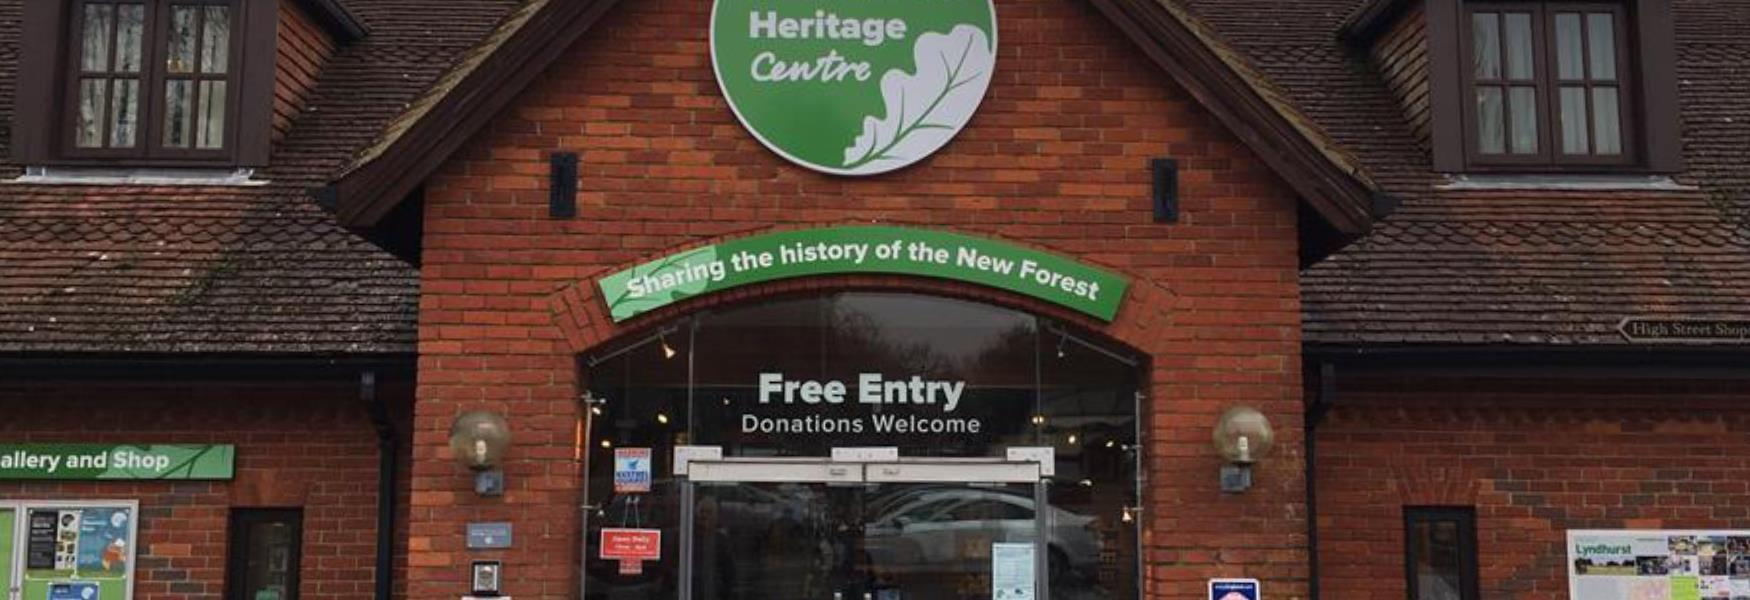 new forest heritage centre in the new forest in lyndhurst